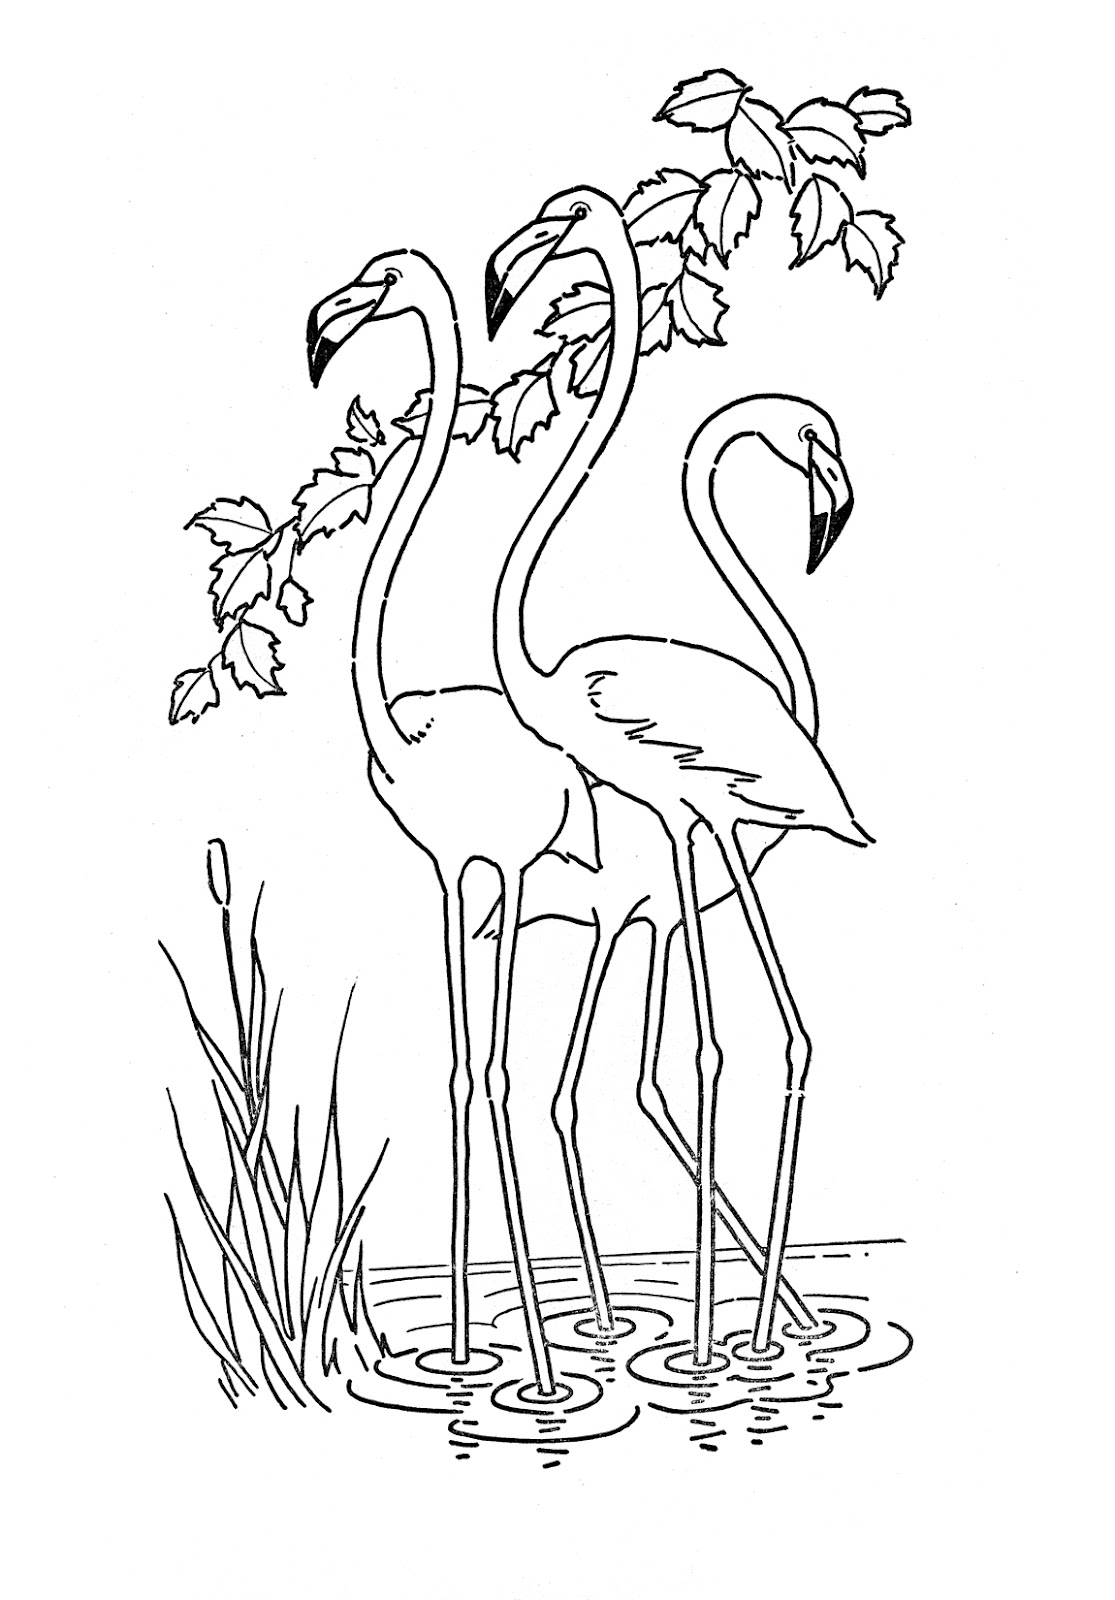 coloring pages printables free printable nickelodeon coloring pages for kids pages printables coloring